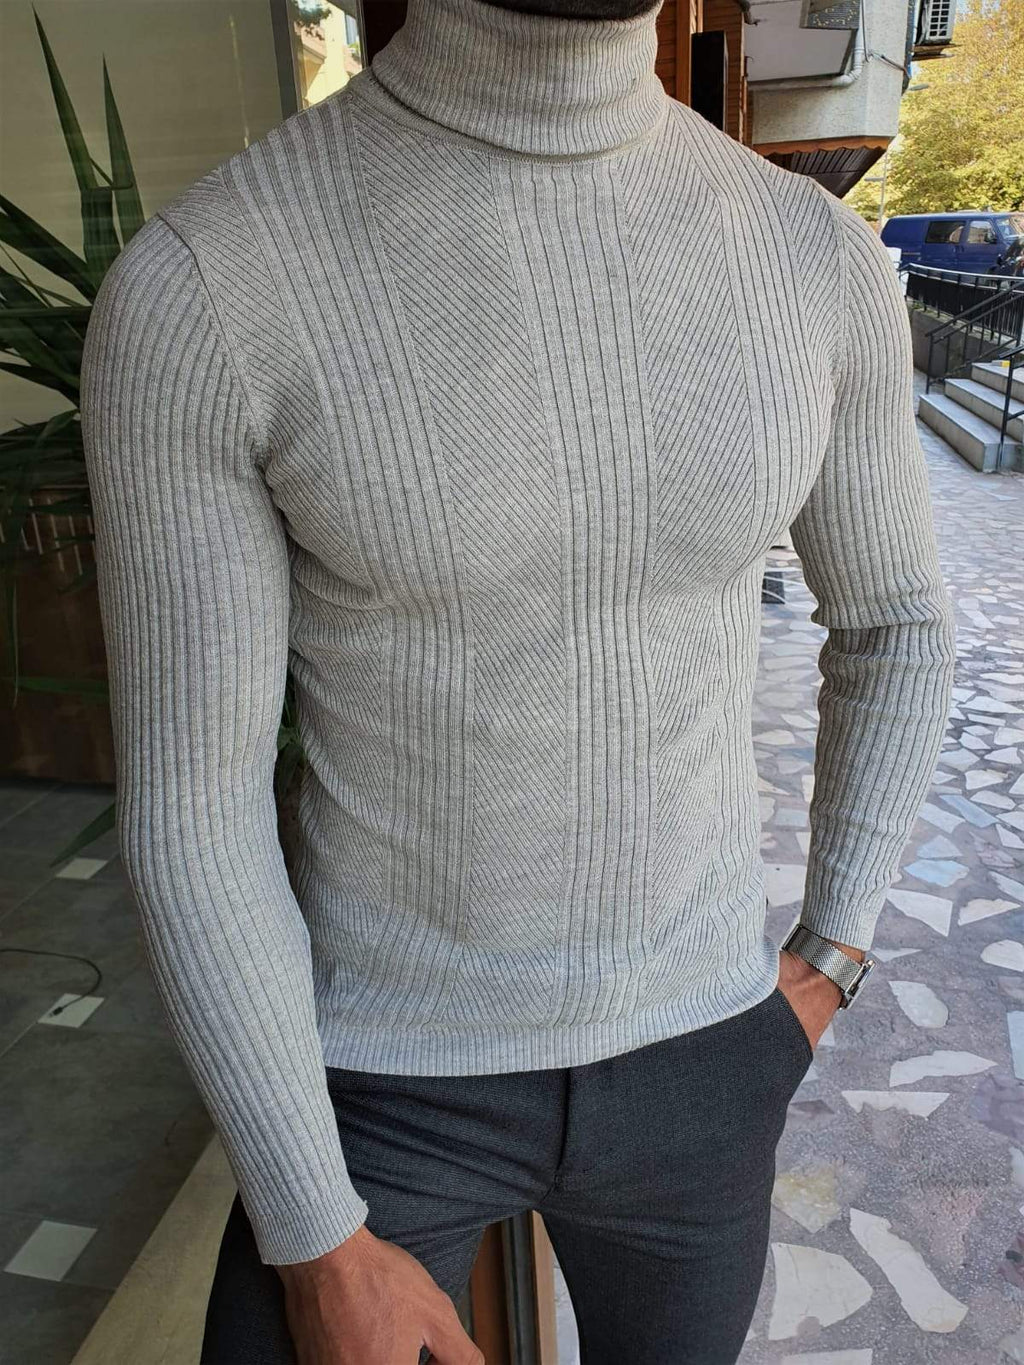 Elko Gray Slim Fit Striped Turtleneck Wool Sweater